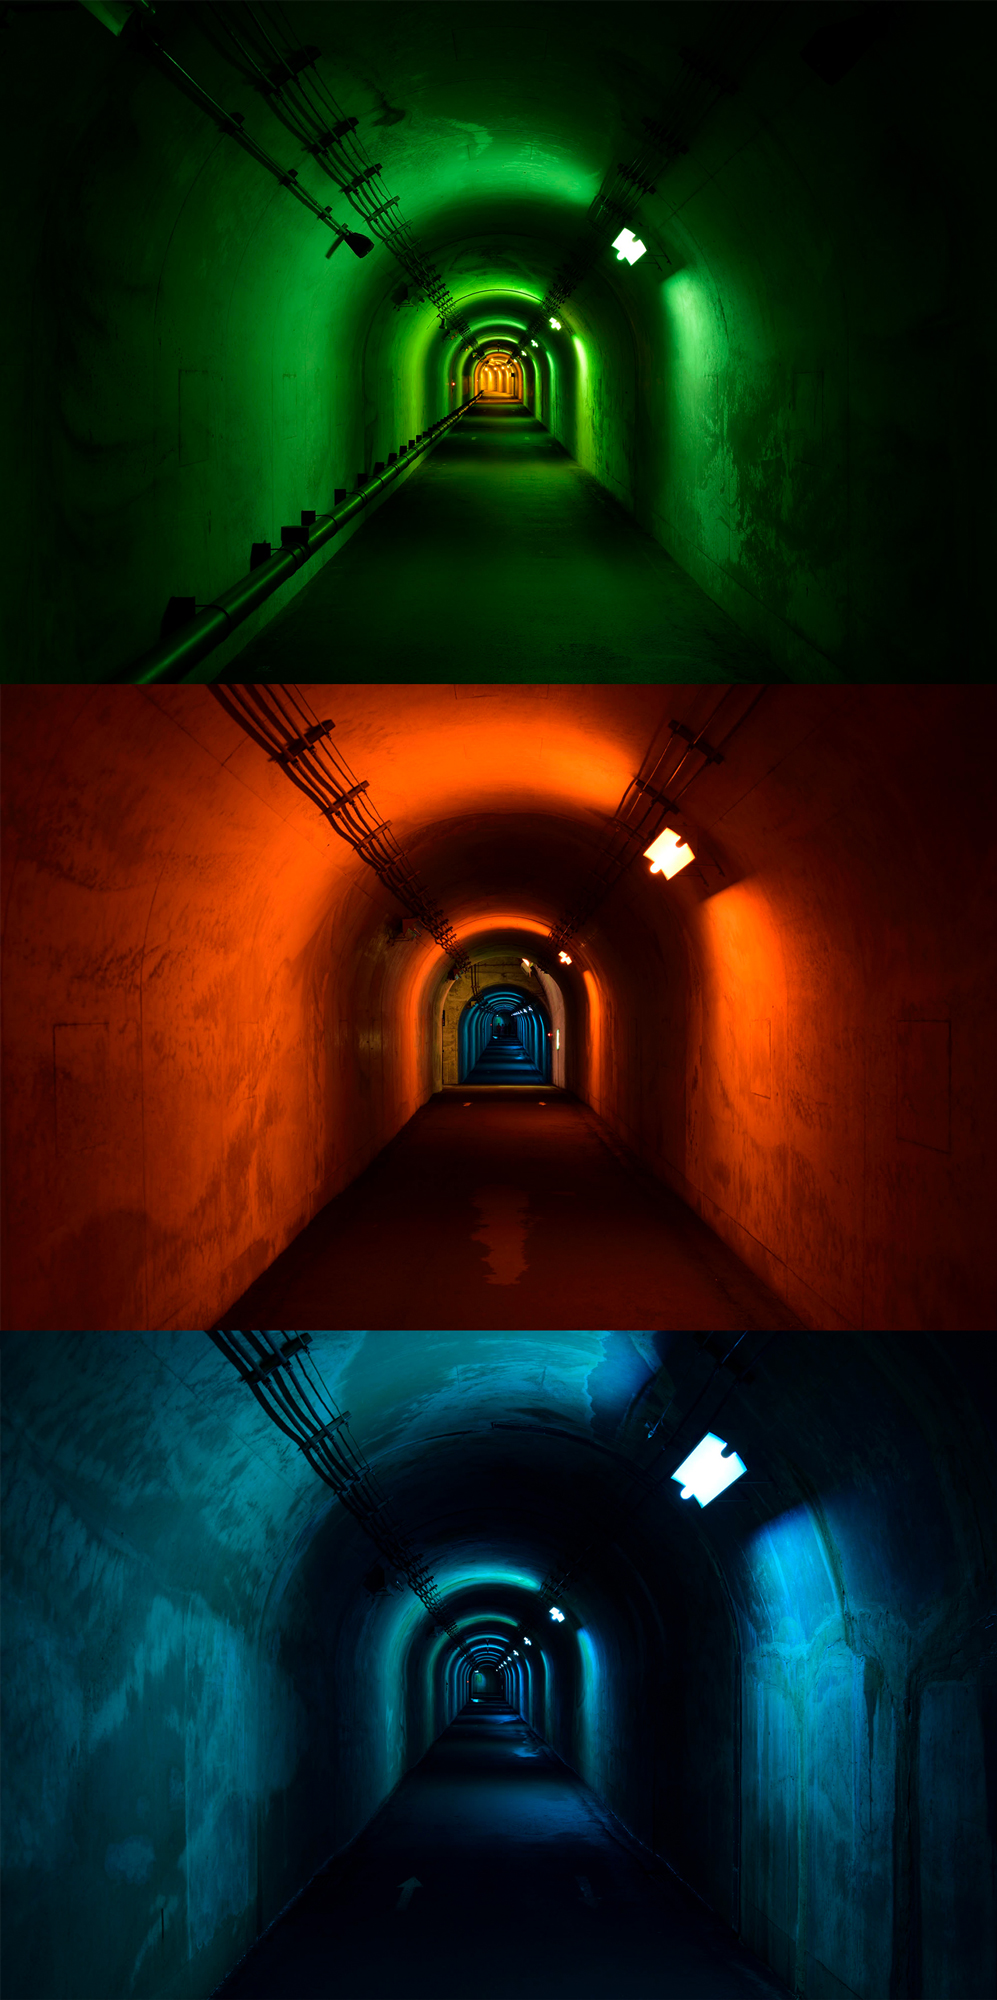 12_MAD_Echigo Tsumari_Tunnel of Light_Expression of colors_by Nacasa & Partners Inc._low-res